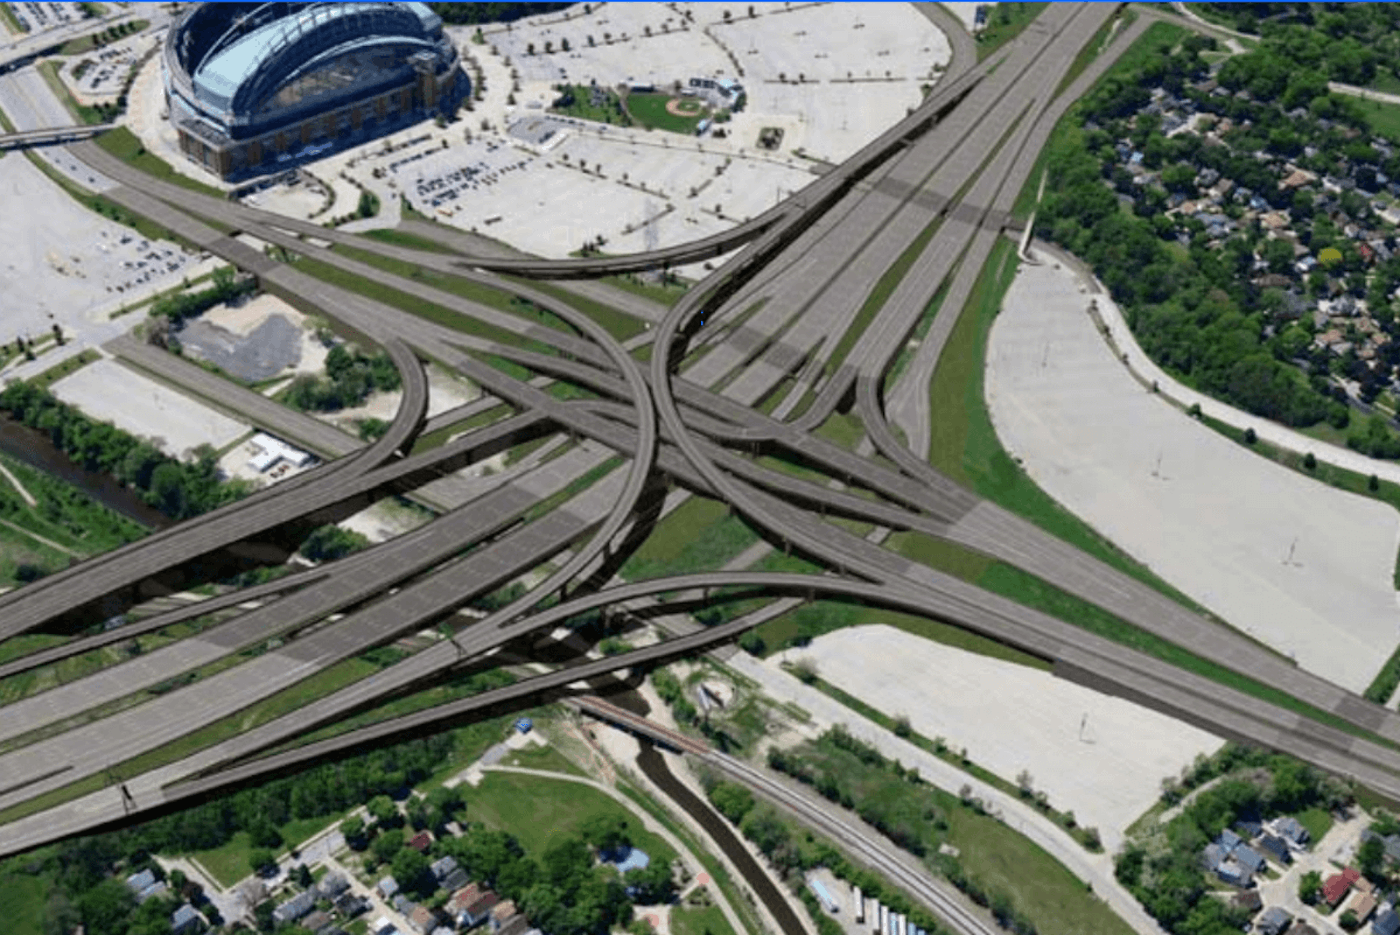 A Wisconsin Dept. of Transportation 2016 rendering of a how part of the I-94 East-West corridor would look as it passed through the Stadium Interchange next to Miller Park.